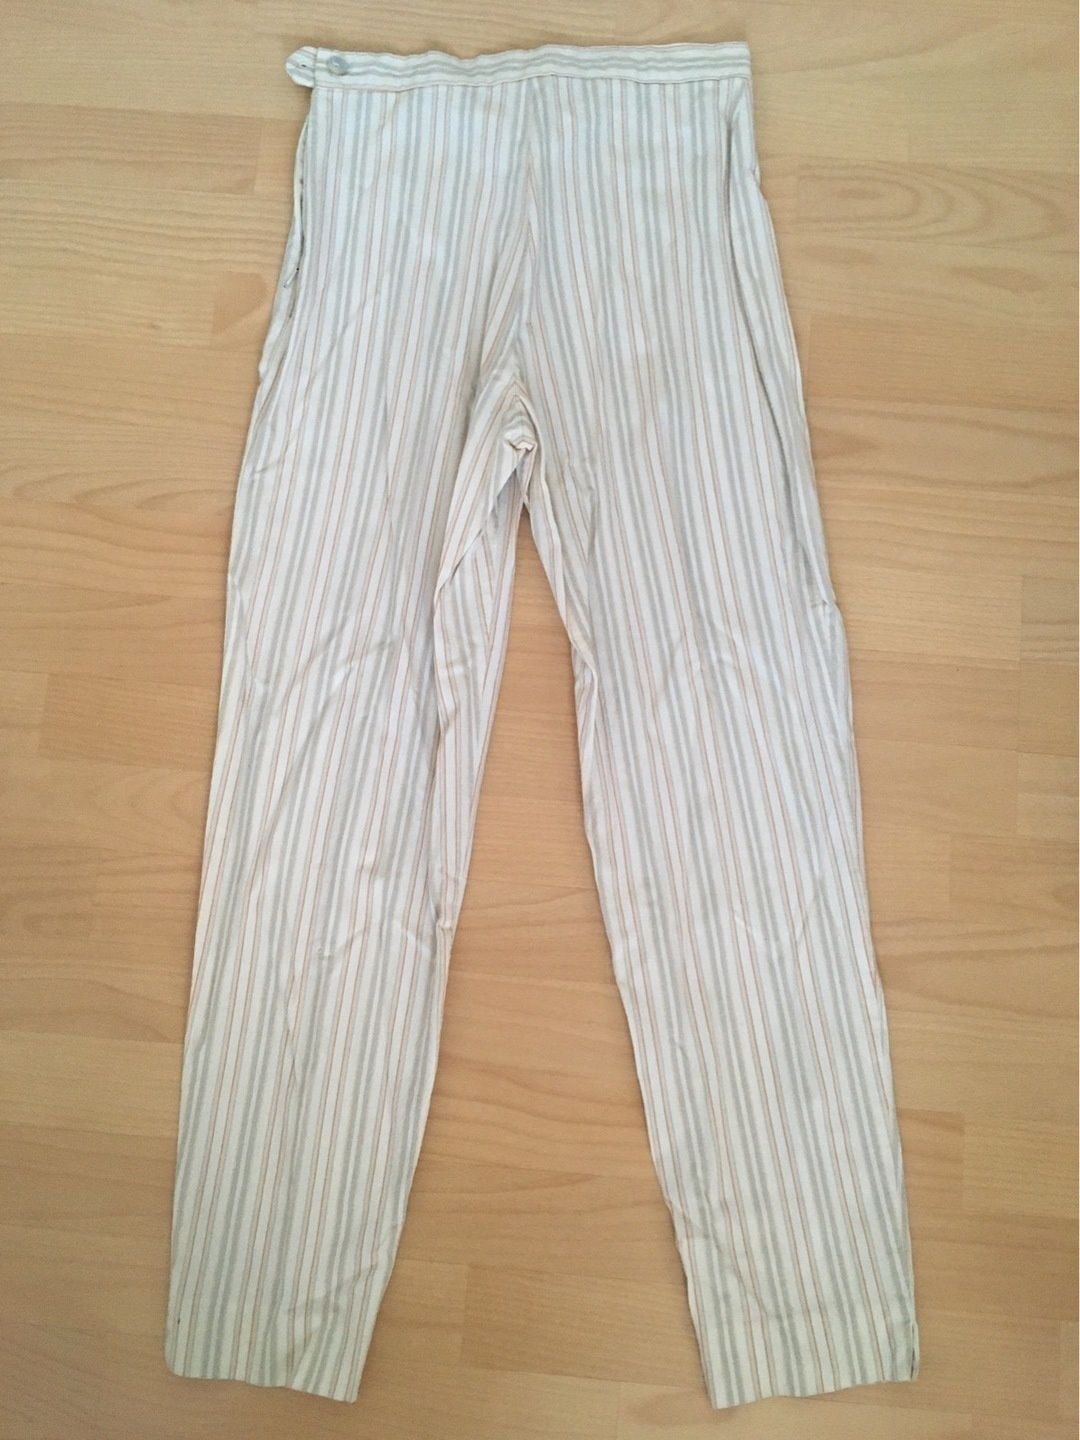 Women's trousers & jeans - ORWELL photo 3